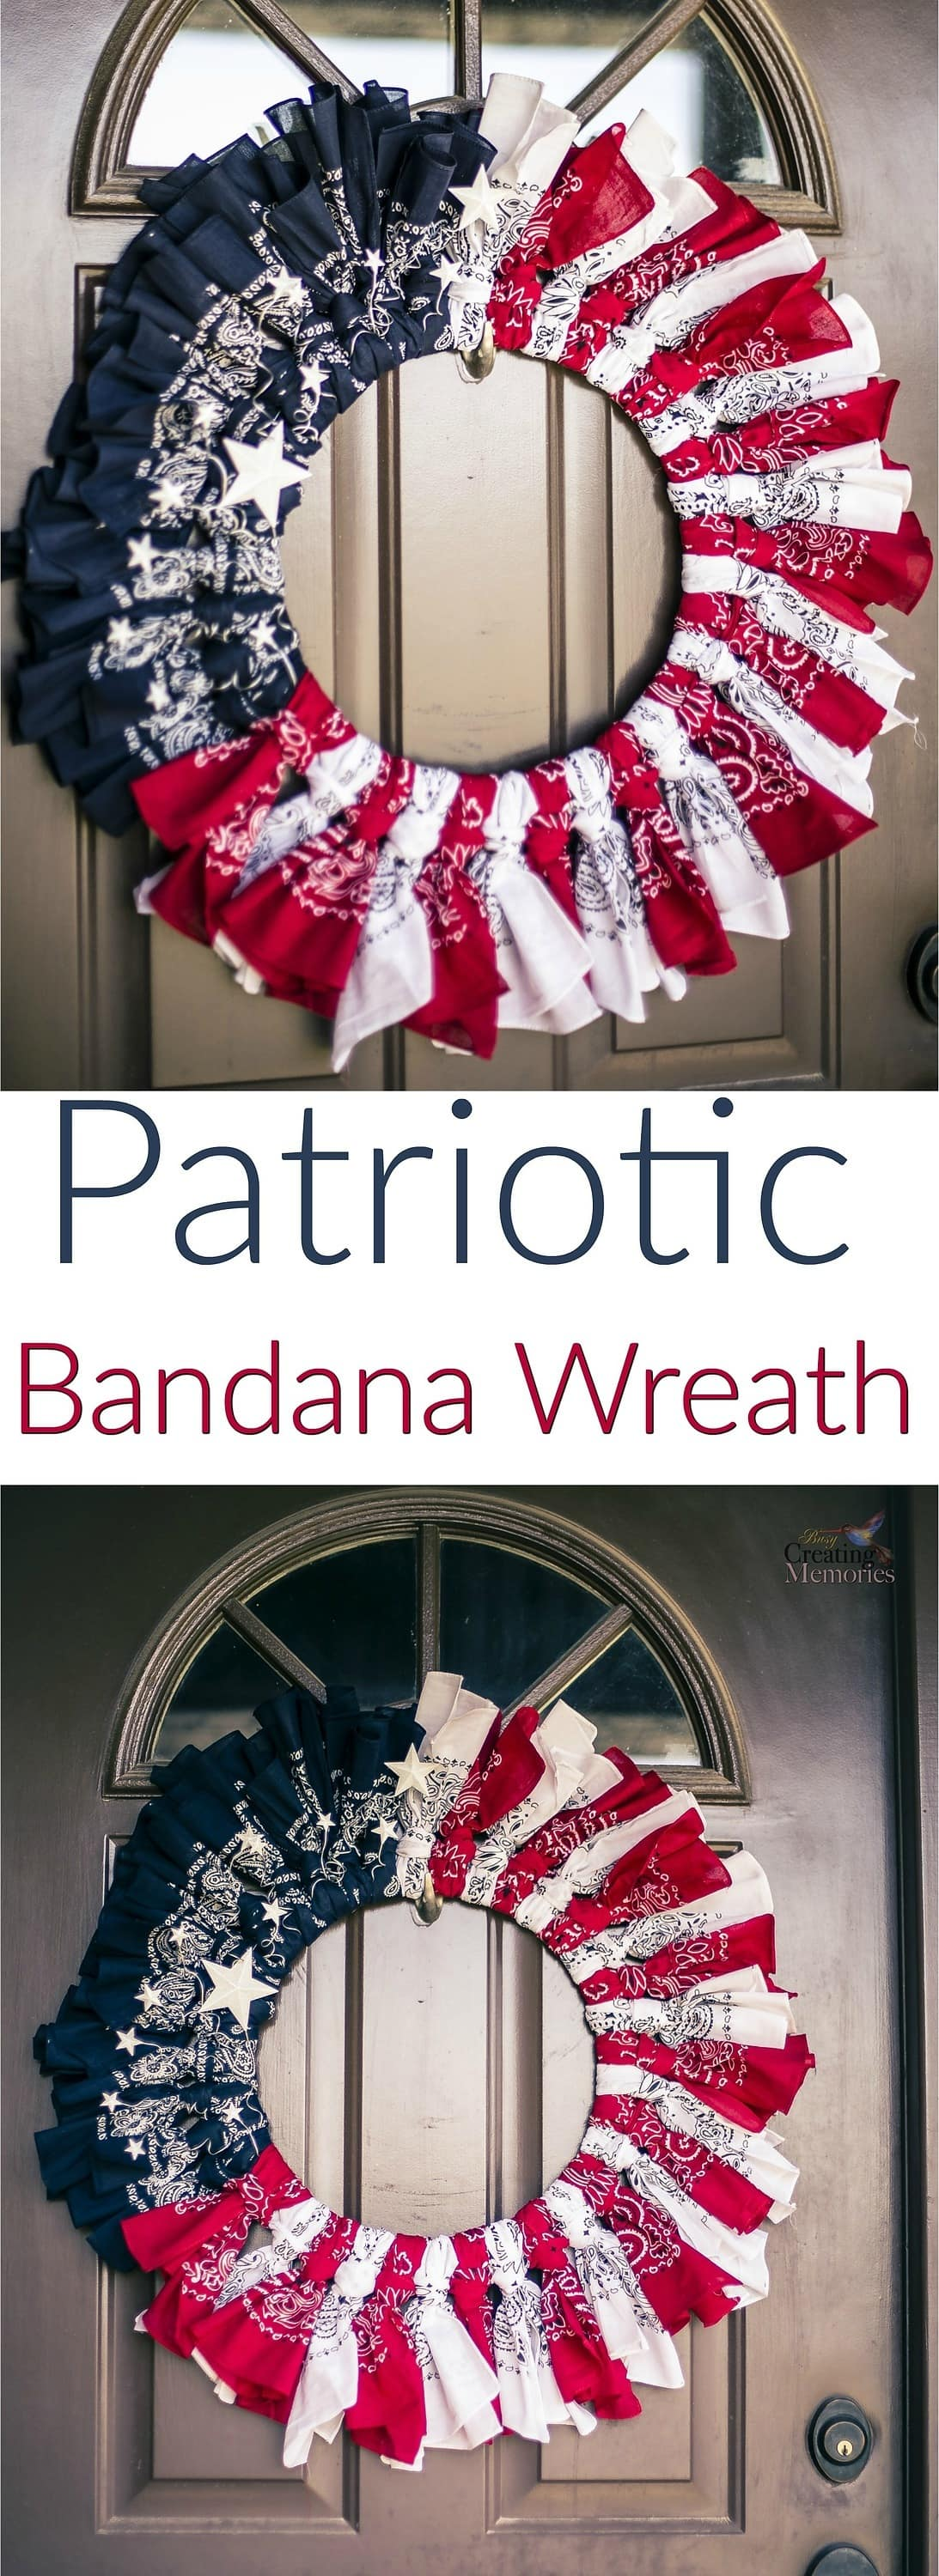 This Stunning and Easy DIY Patriotic Bandana Wreath for the front door is perfect for any patriotic holiday and is easy to create in less than an hour (minus drying time). You can show your American Pride or Military support on Memorial Day, 4th of July, Veterans Day or Labor Day!